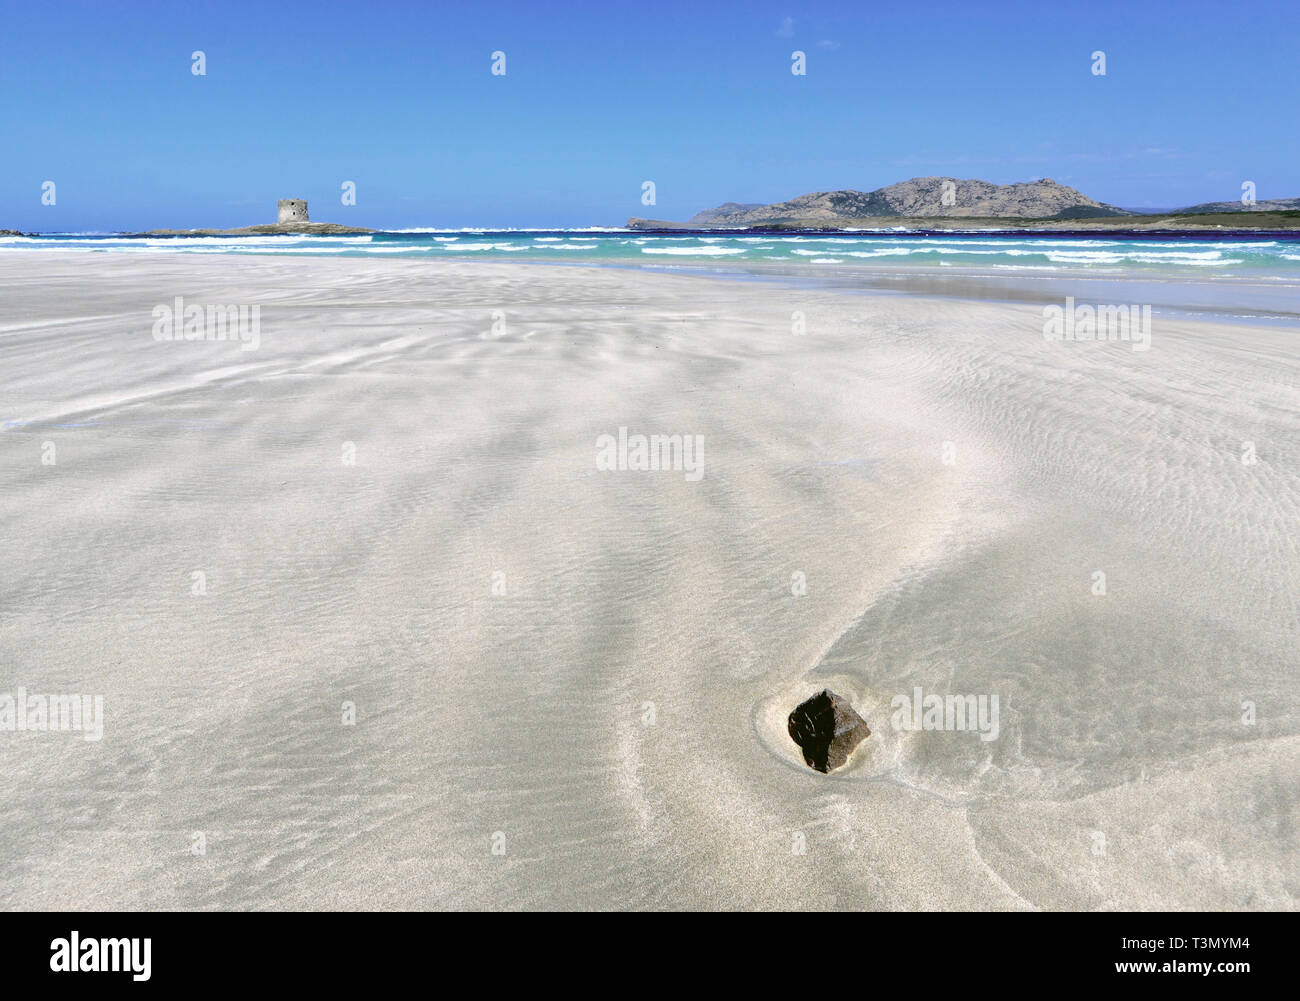 A mid-day view of the wonderful, tropical-like beach of La Pelosa nearby Stintino in Sardinia, Italy, with the XVI century Genovese watch tower and th - Stock Image